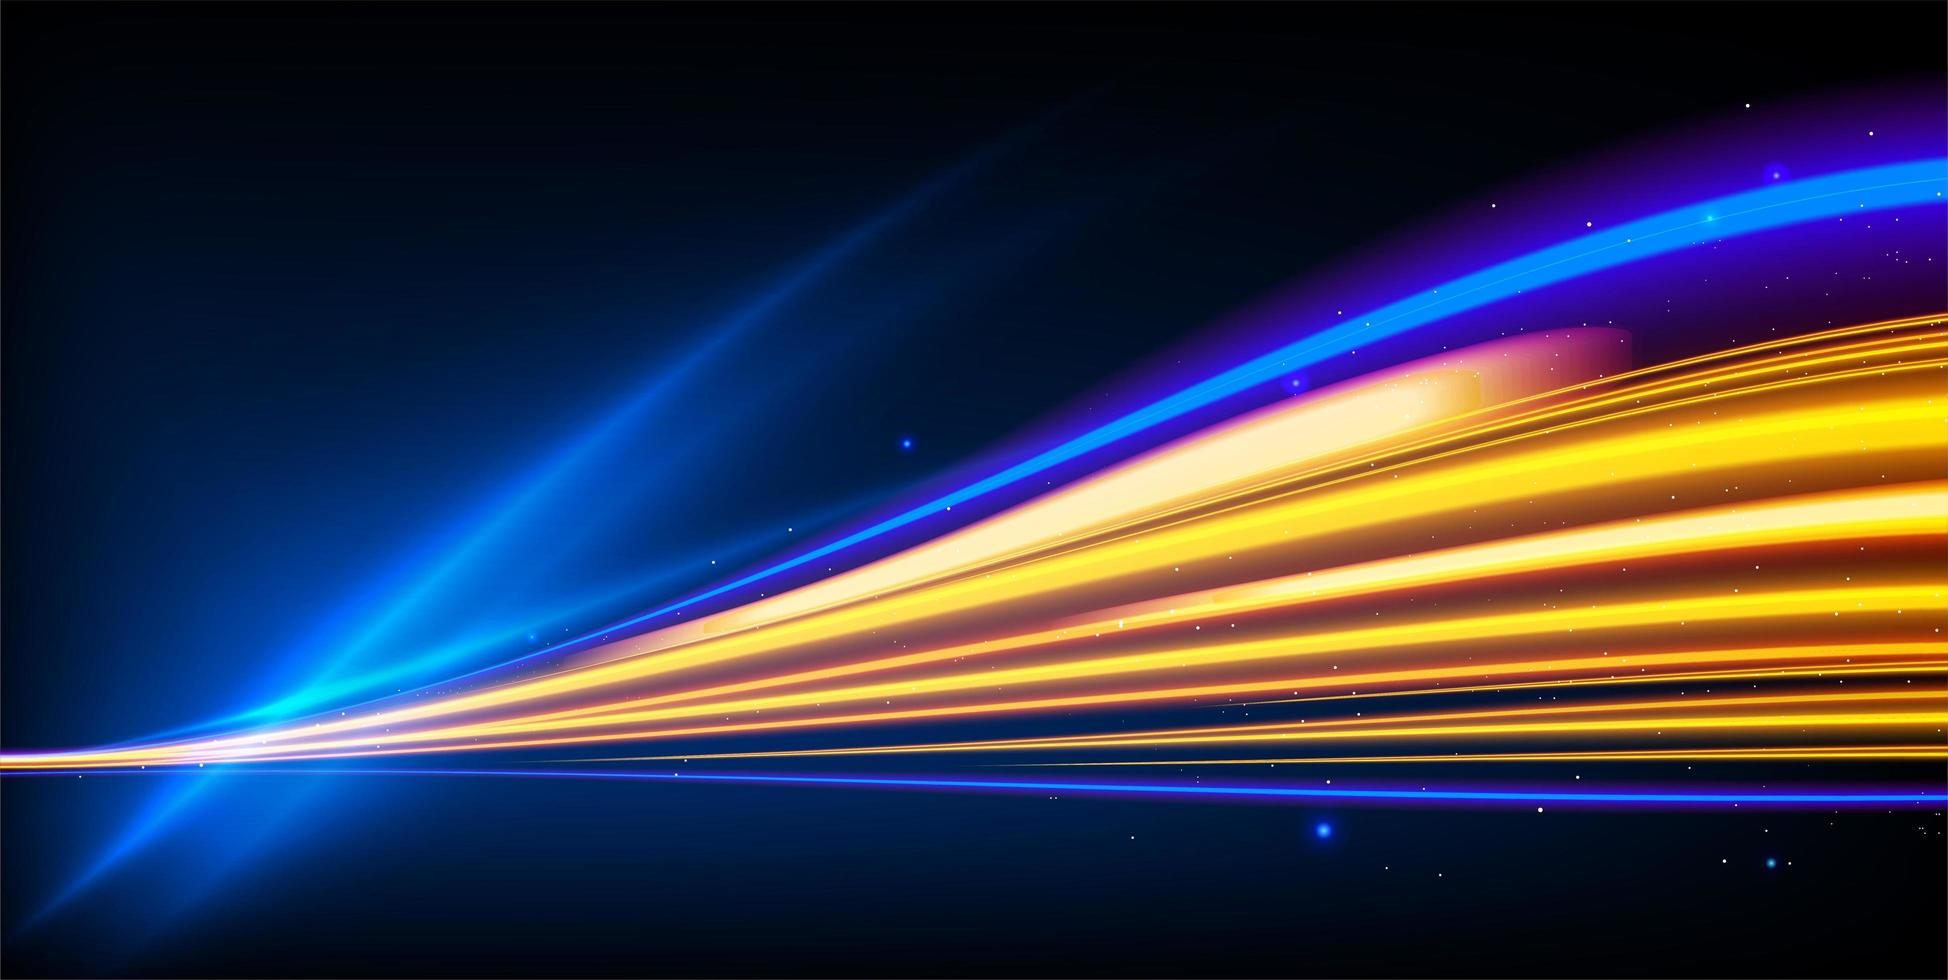 Light Trails Effect with Colorful Blurred Lines vector